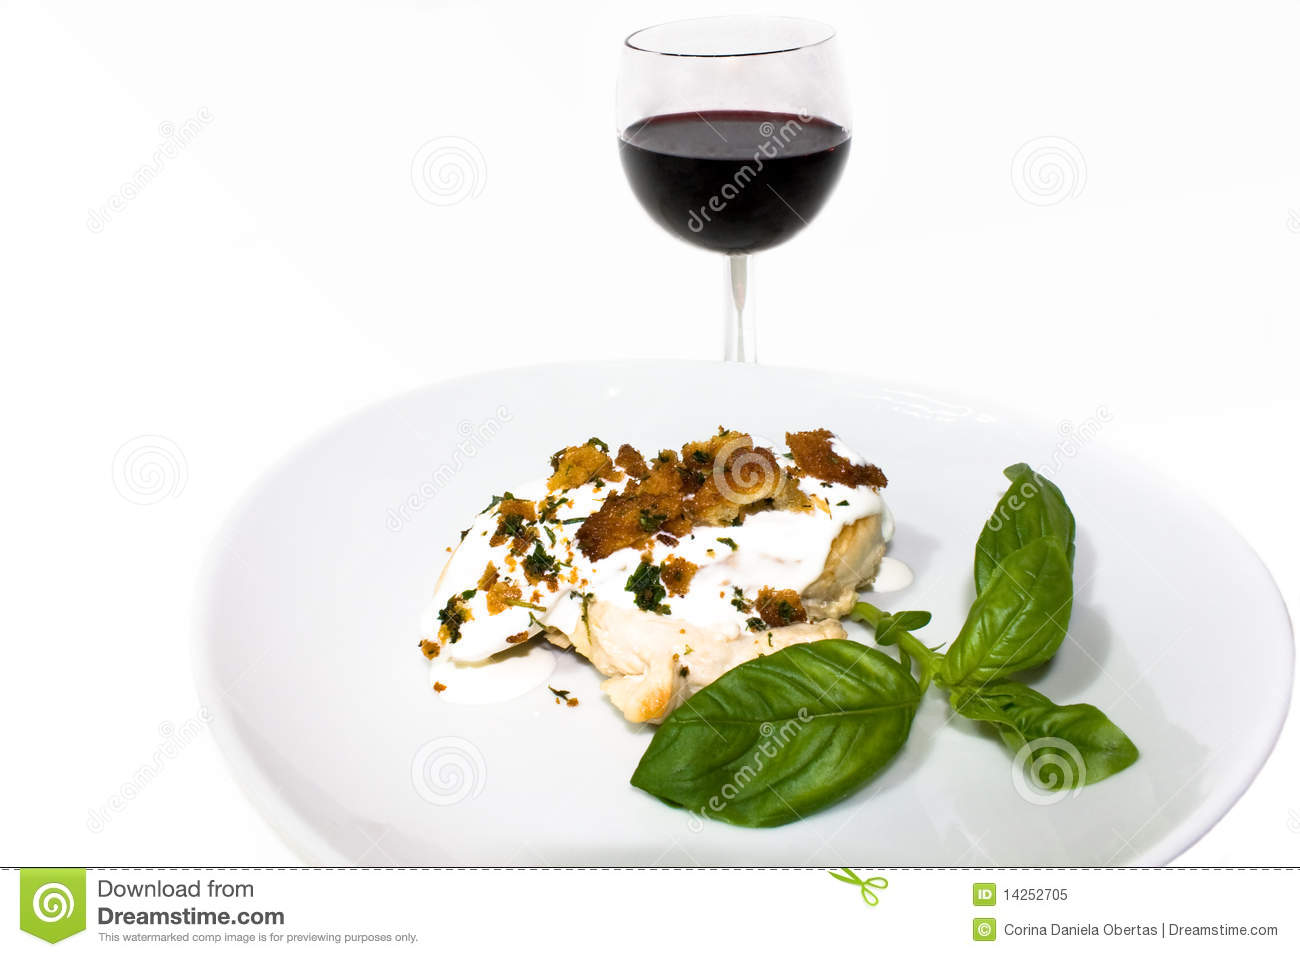 ... Drinks - French Cuisine - Stuffed Herbed Chicken With Boursin Cheese